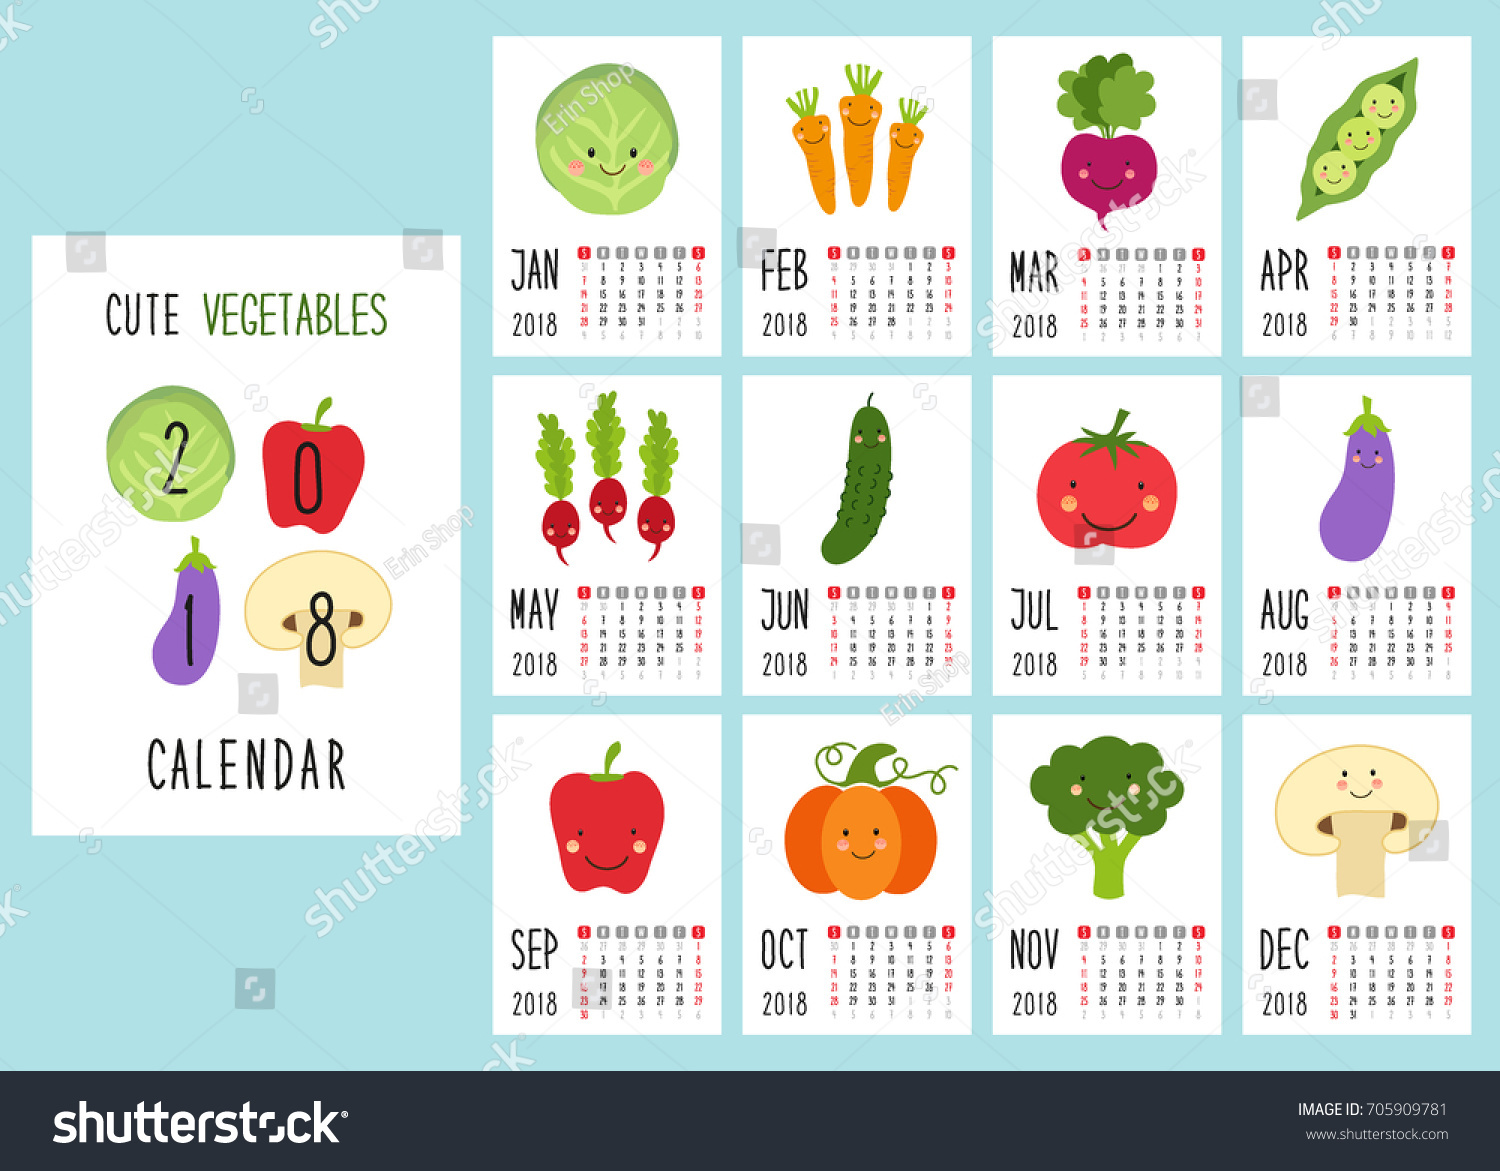 Cute 2018 Calendar Pages Smiling Characters Stock Vector ...